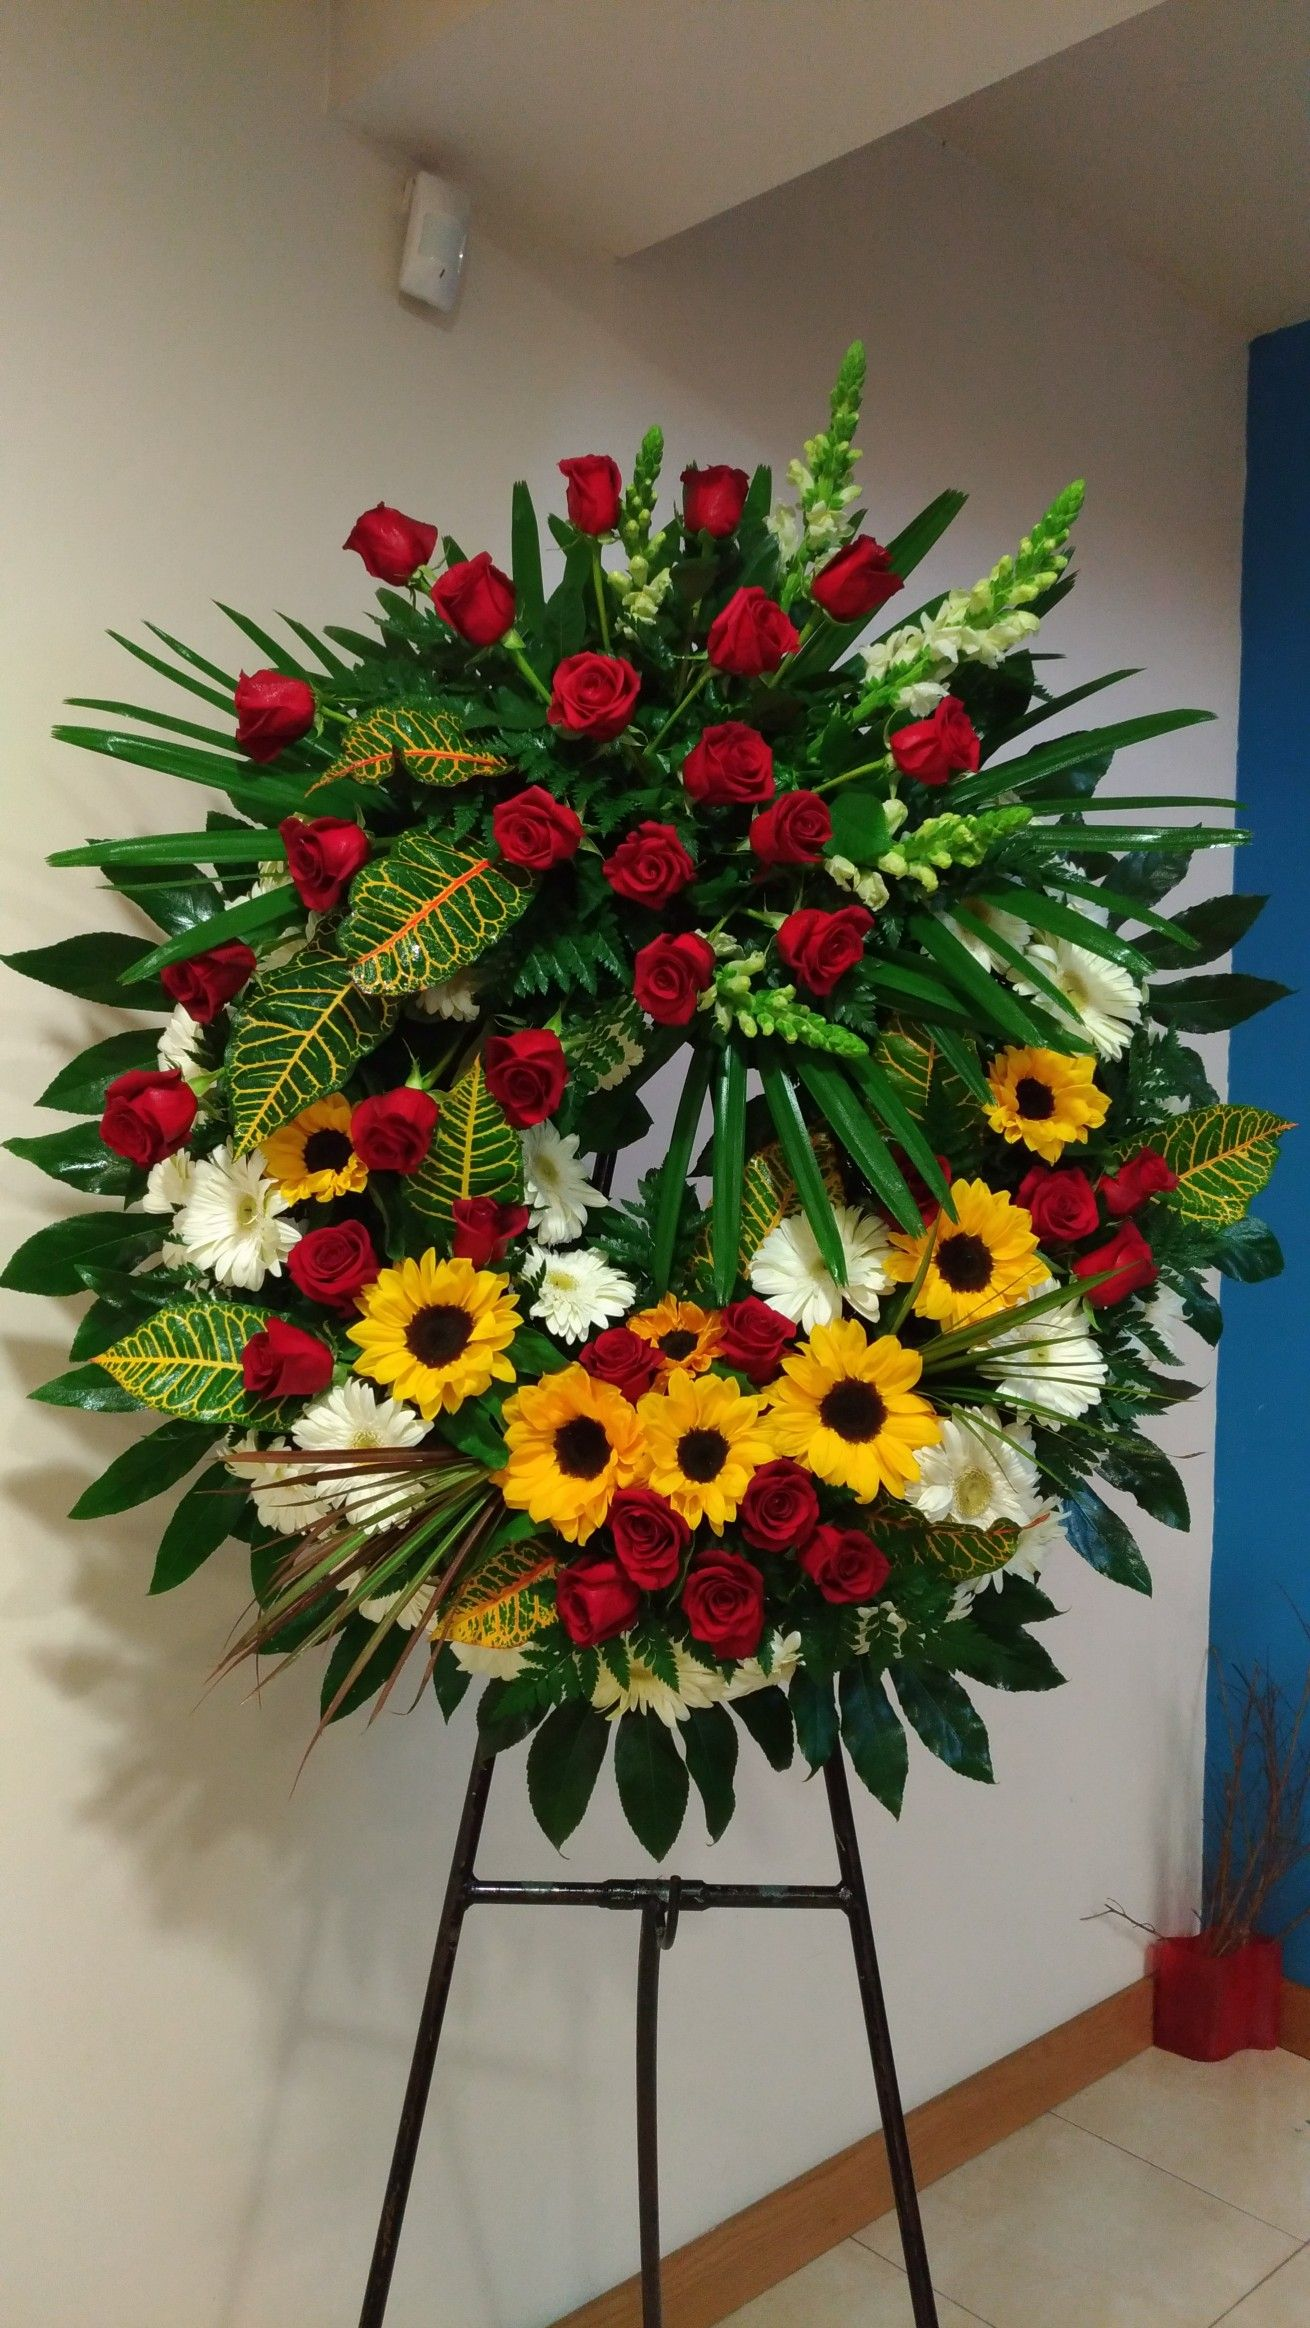 Pin By Nicole Lo On Funeral Arngmnts Pinterest Funeral Funeral